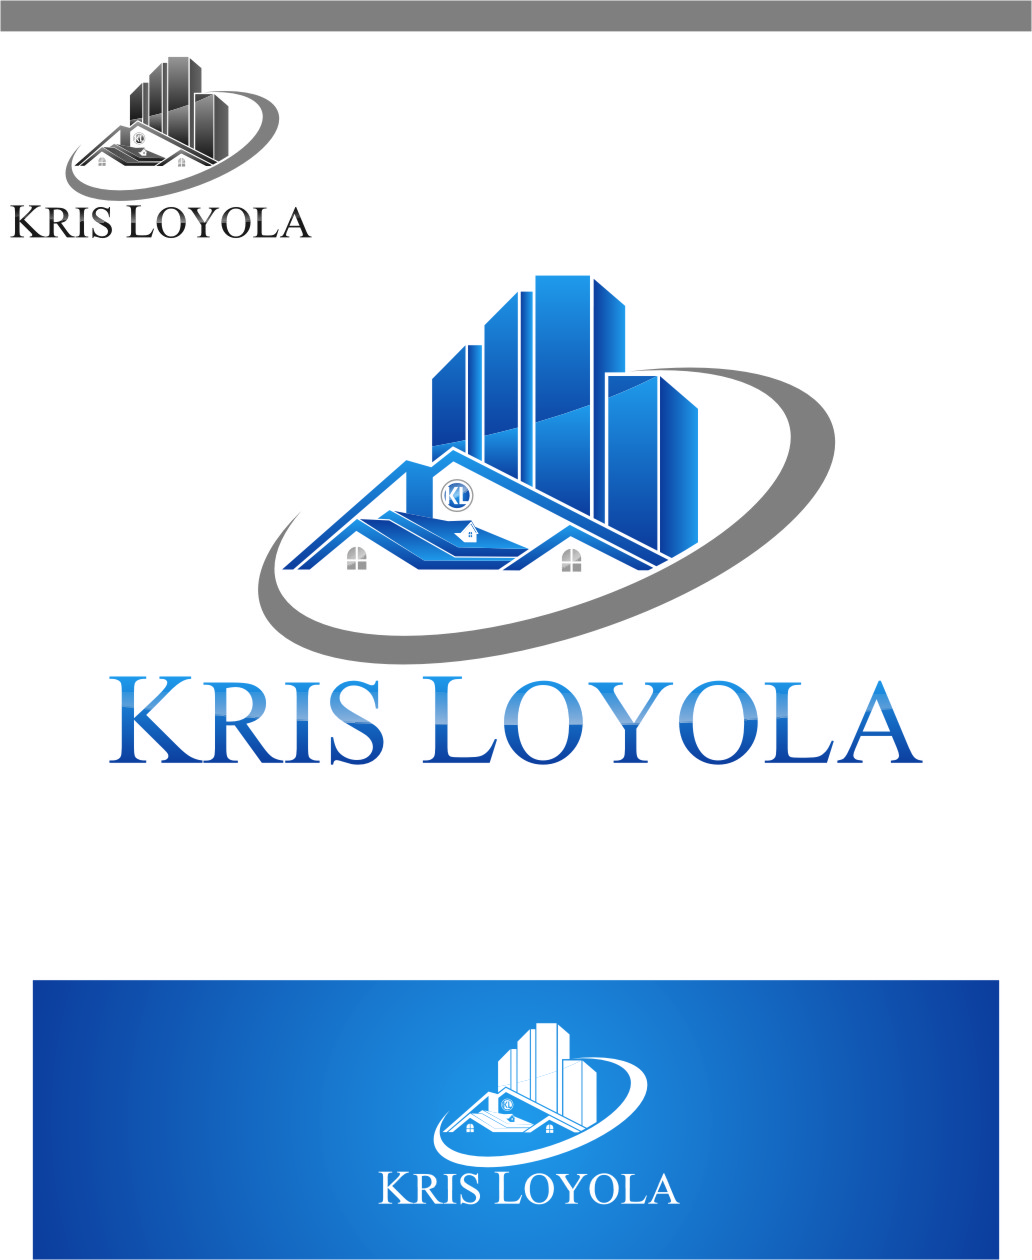 Logo Design by Ngepet_art - Entry No. 134 in the Logo Design Contest Kris Loyola Logo Design.